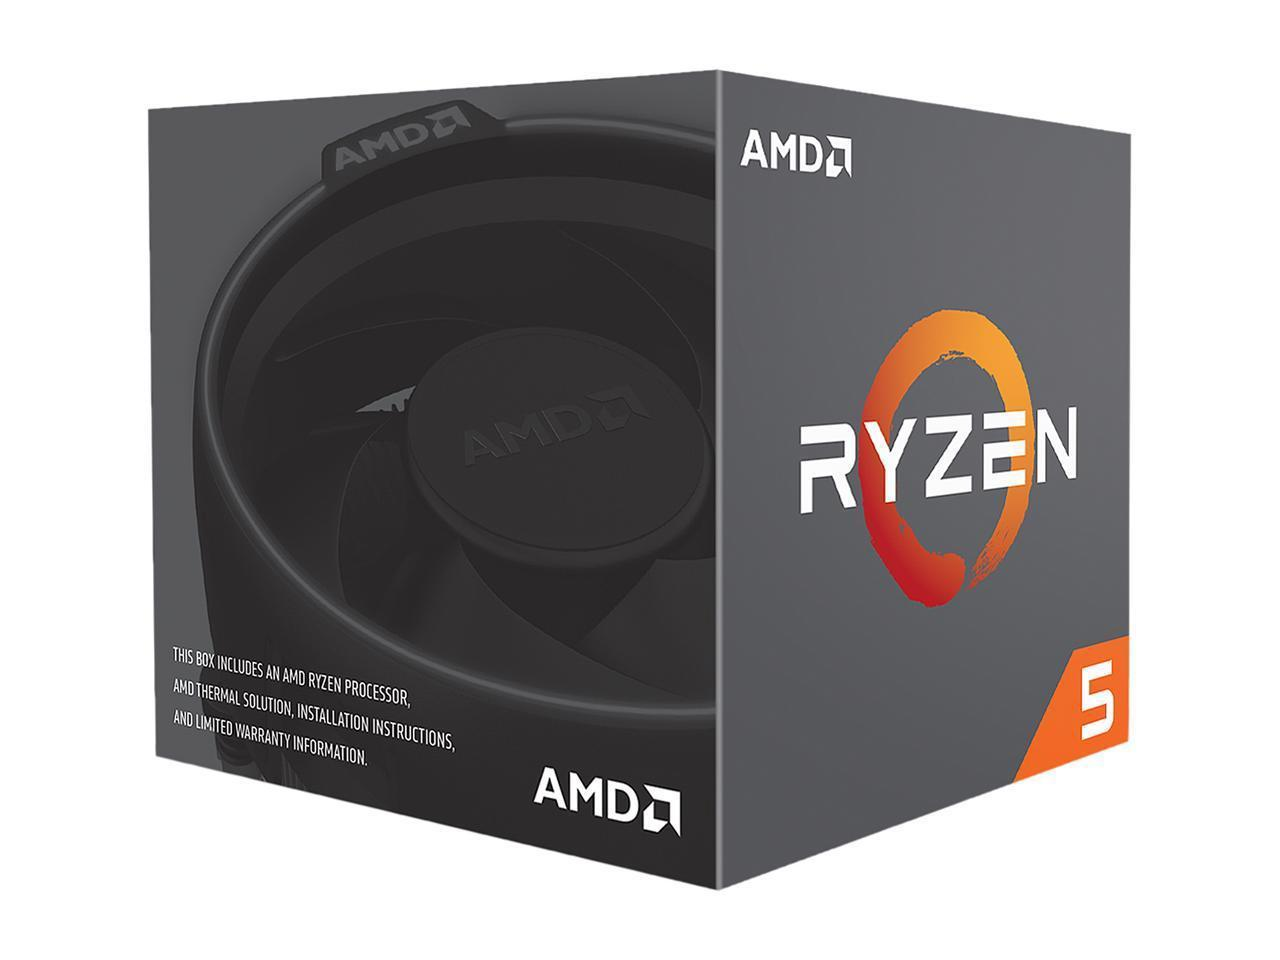 Процесор AMD RYZEN 5 2600 6-Core 3.4 GHz (3.9 GHz Turbo) 19MB/65W/AM4/BOX-2